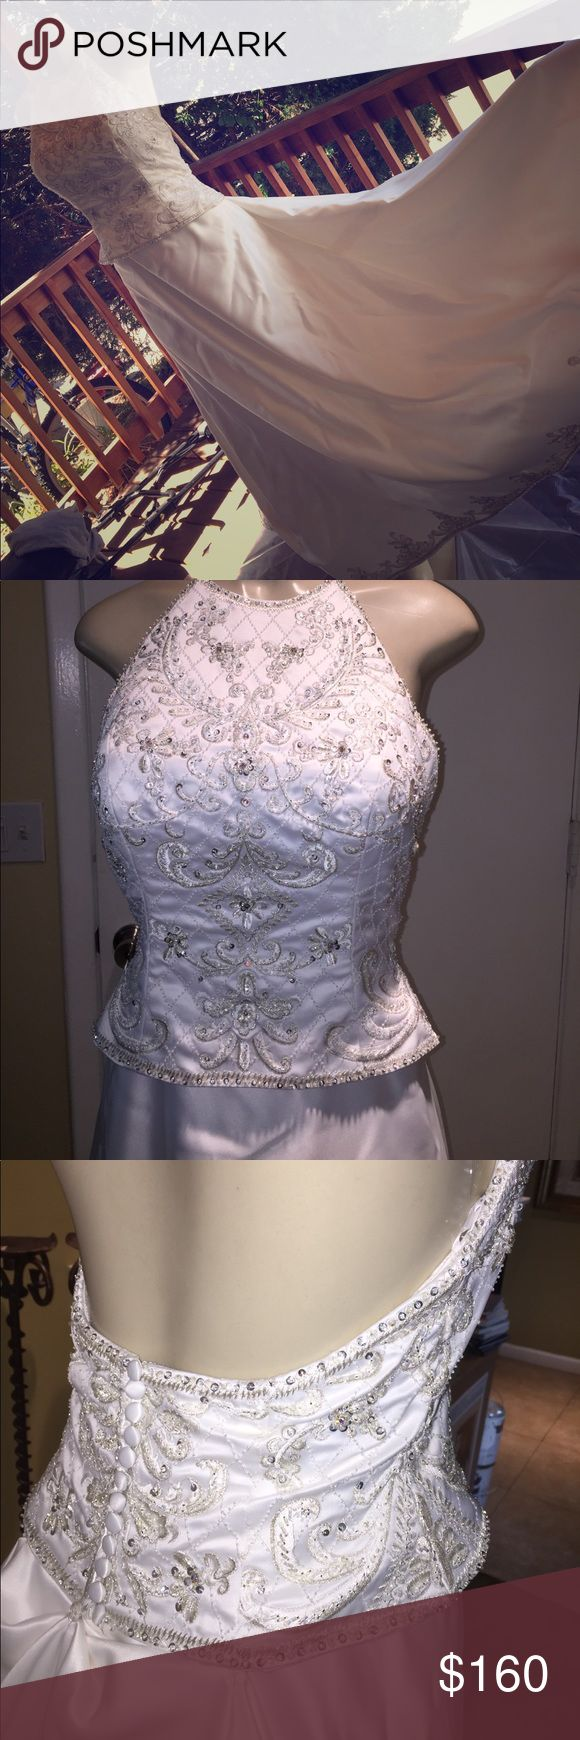 NIB Wedding gown. Price flexible 🎉🎉🎉 Size 10. Never worn or tried on. My mom bought it for her sister who was engaged but broke it off. Sadly I'm not sure if I can ship it with the box. Its from a local boutique. Bought for $400 on sale. It's a shame we don't fit it/ not getting married any time soon. Price flexible in order to help make your dreams come true! 🤗 I maybe able to include the box... however I would not be sure how to mail it. Upgraded shipping labels go by weight. This is…